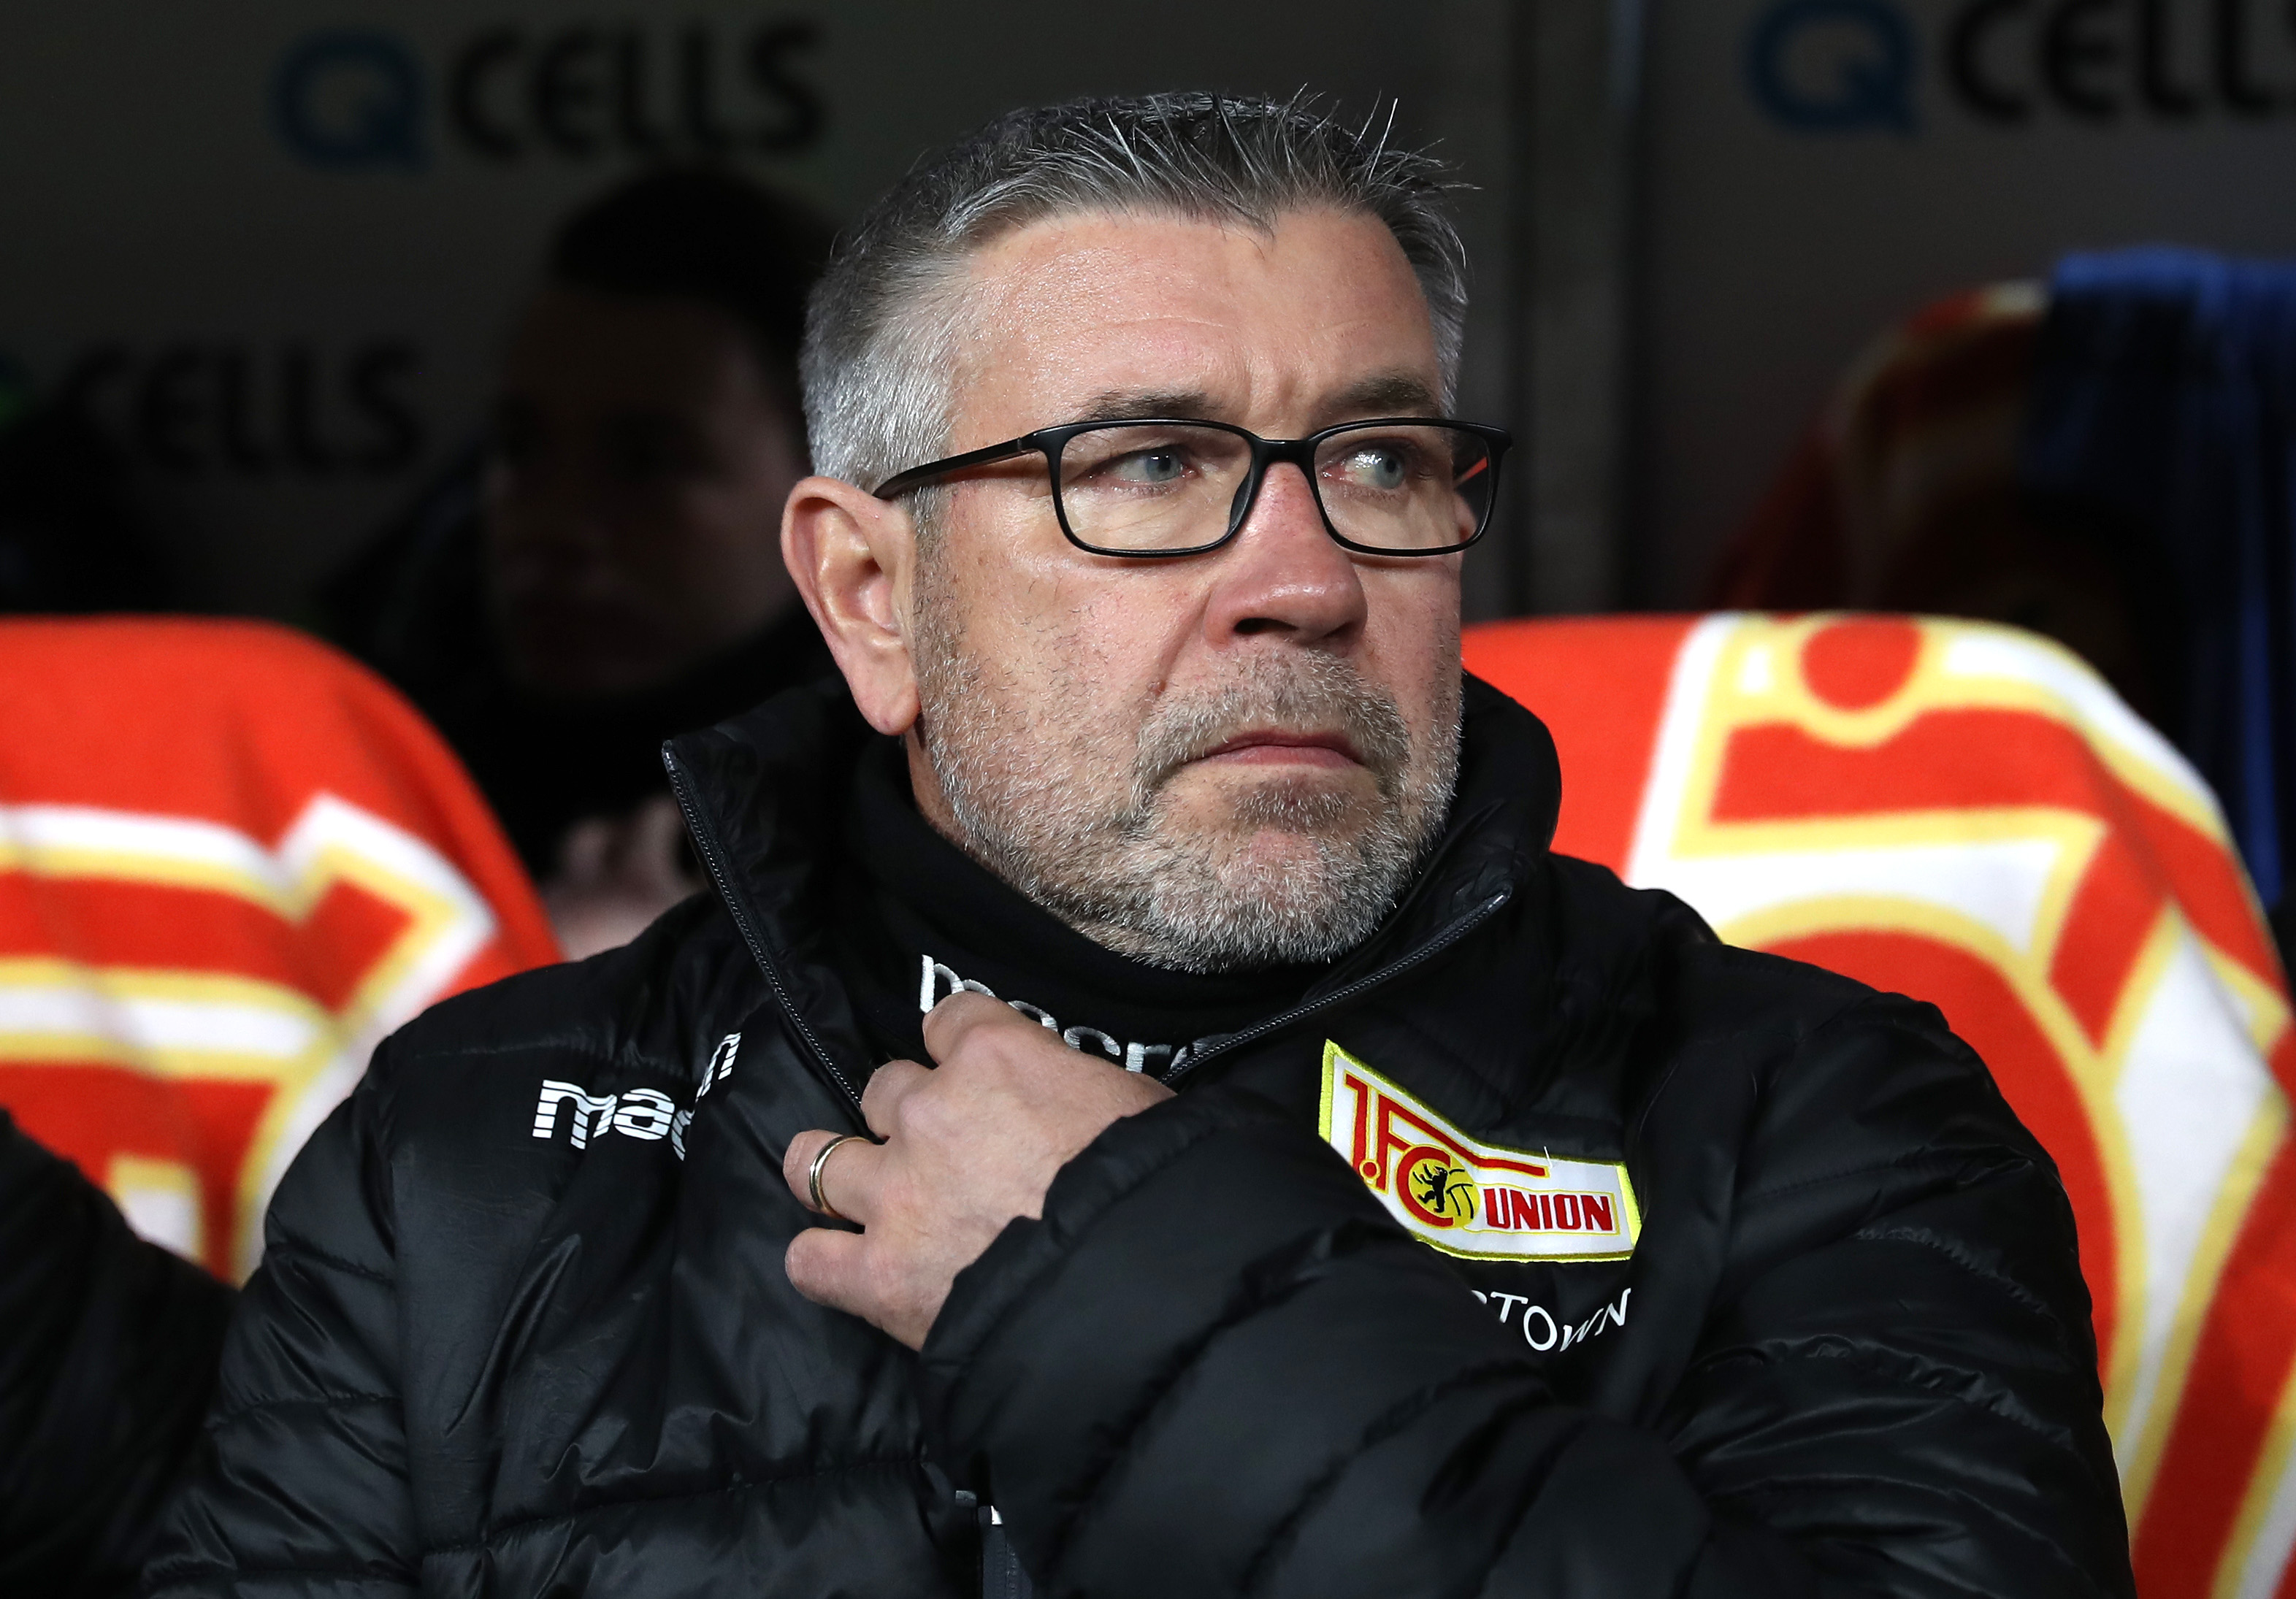 Union Berlin boss Urs Fisher will not be present on the sidelines (Photo by Maja Hitij/Bongarts/Getty Images)